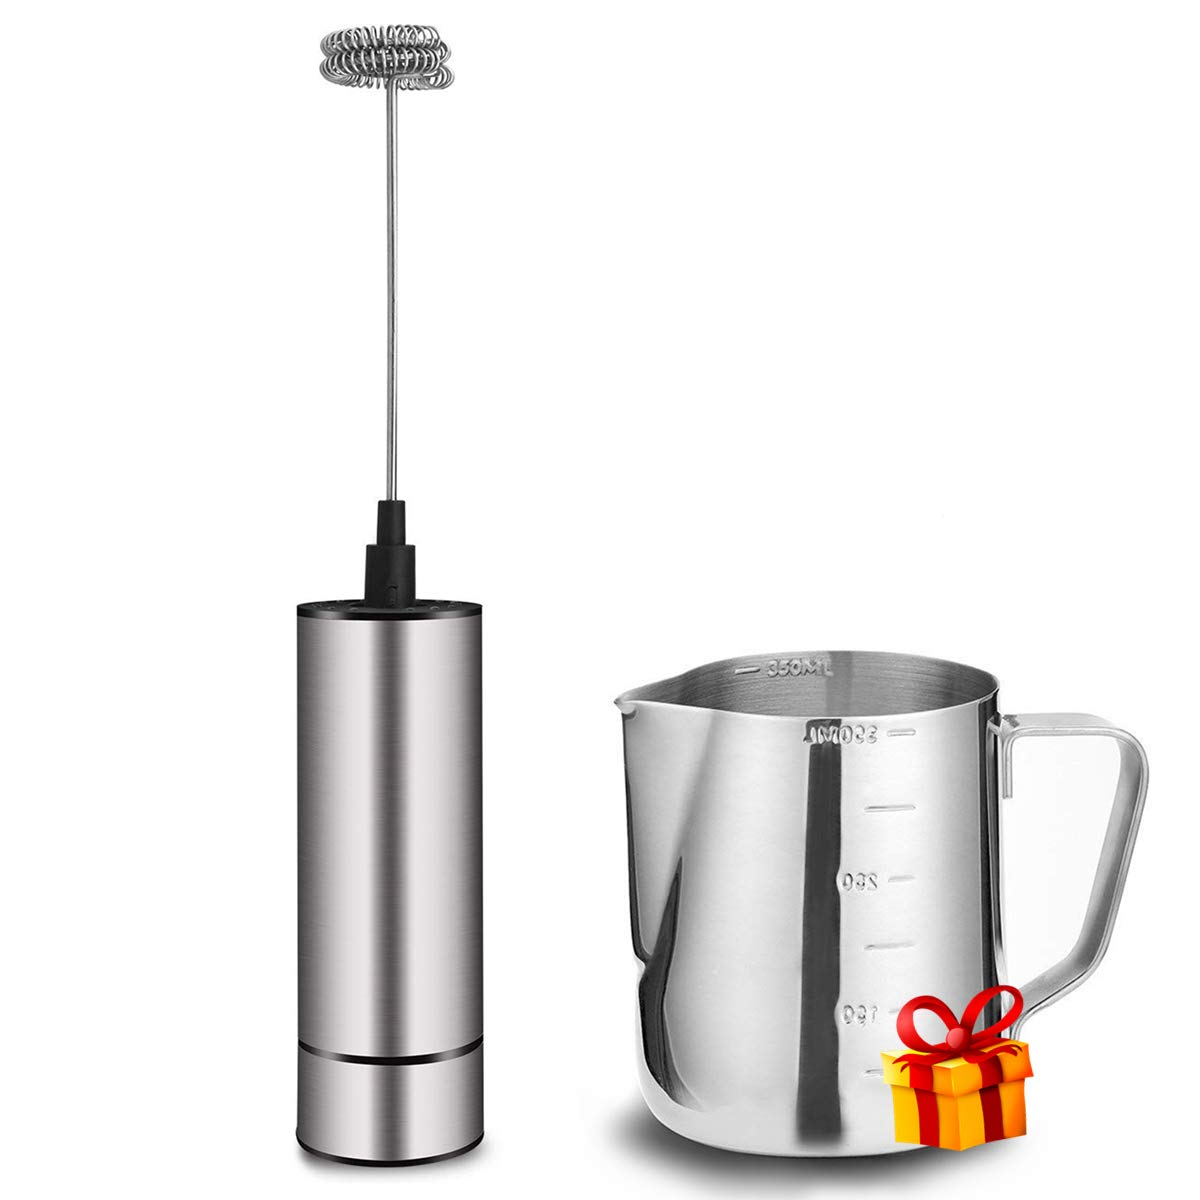 Milk Frother, Basecent Electric Milk Frother Handheld Milk Foamer For Coffee, Latte, Cappuccino, Matcha, Frappe/Automatic Stainless Steel Mini Drink Mixer Battery Operated Coffee Blender